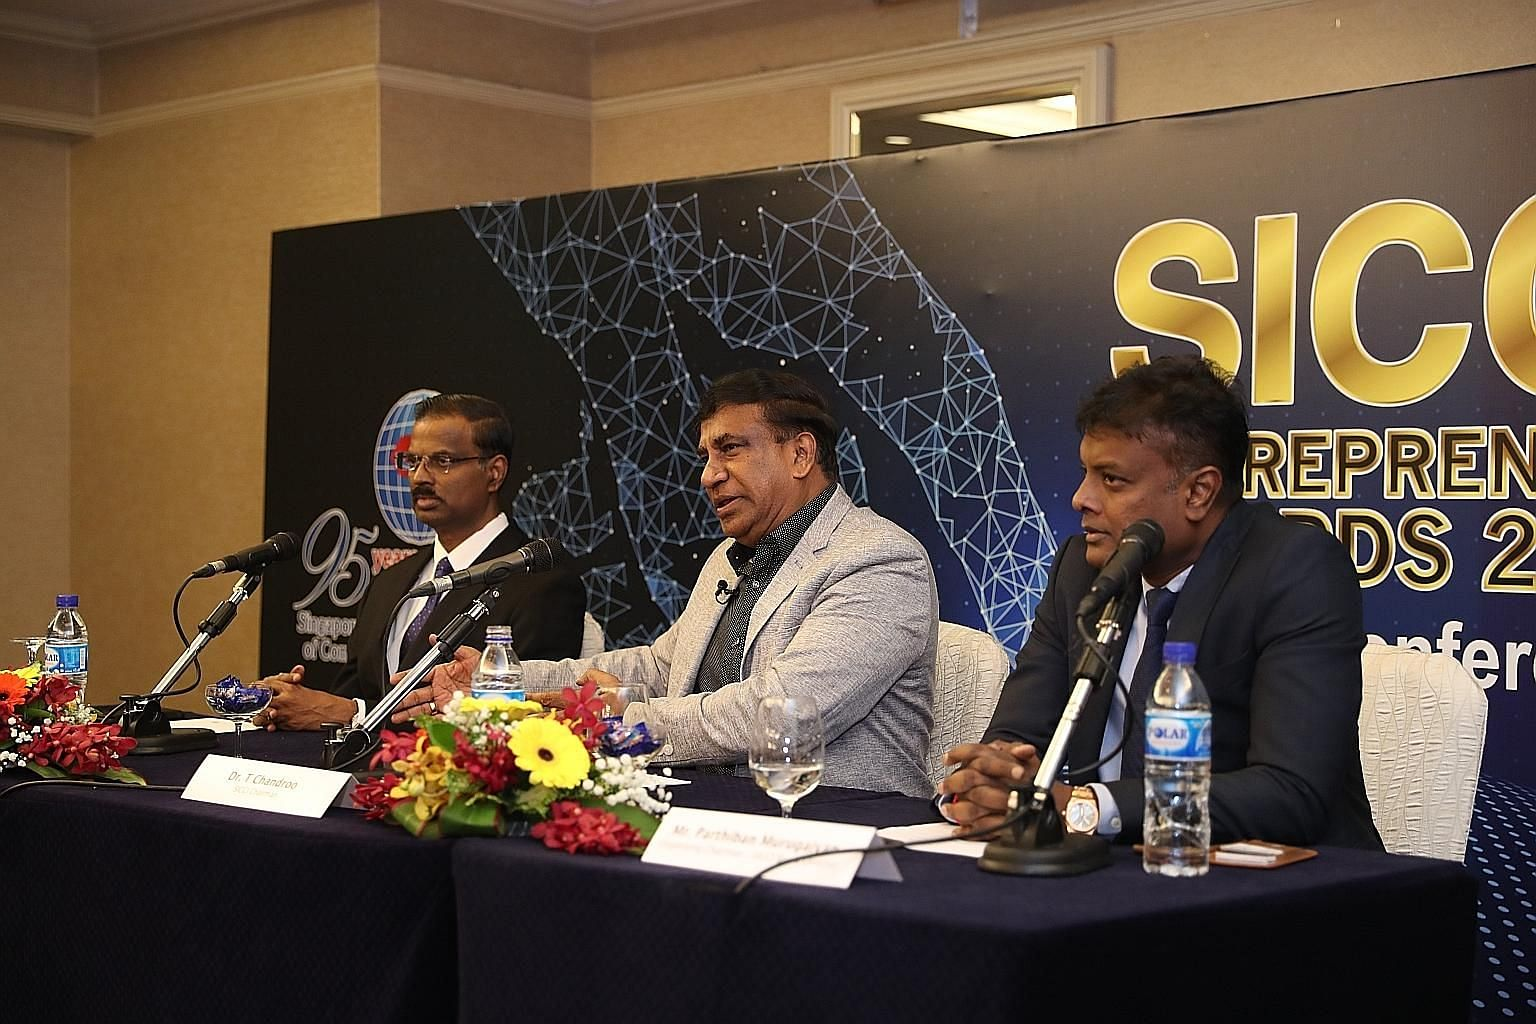 (From left) SICCI chief executive Kumaran Barathan, SICCI chairman T. Chandroo, and organising chairman and SICCI board director Parthiban Murugaiyan at the launch of SICCI's Entrepreneur Awards 2019 at the Marina Mandarin Singapore yesterday. The aw